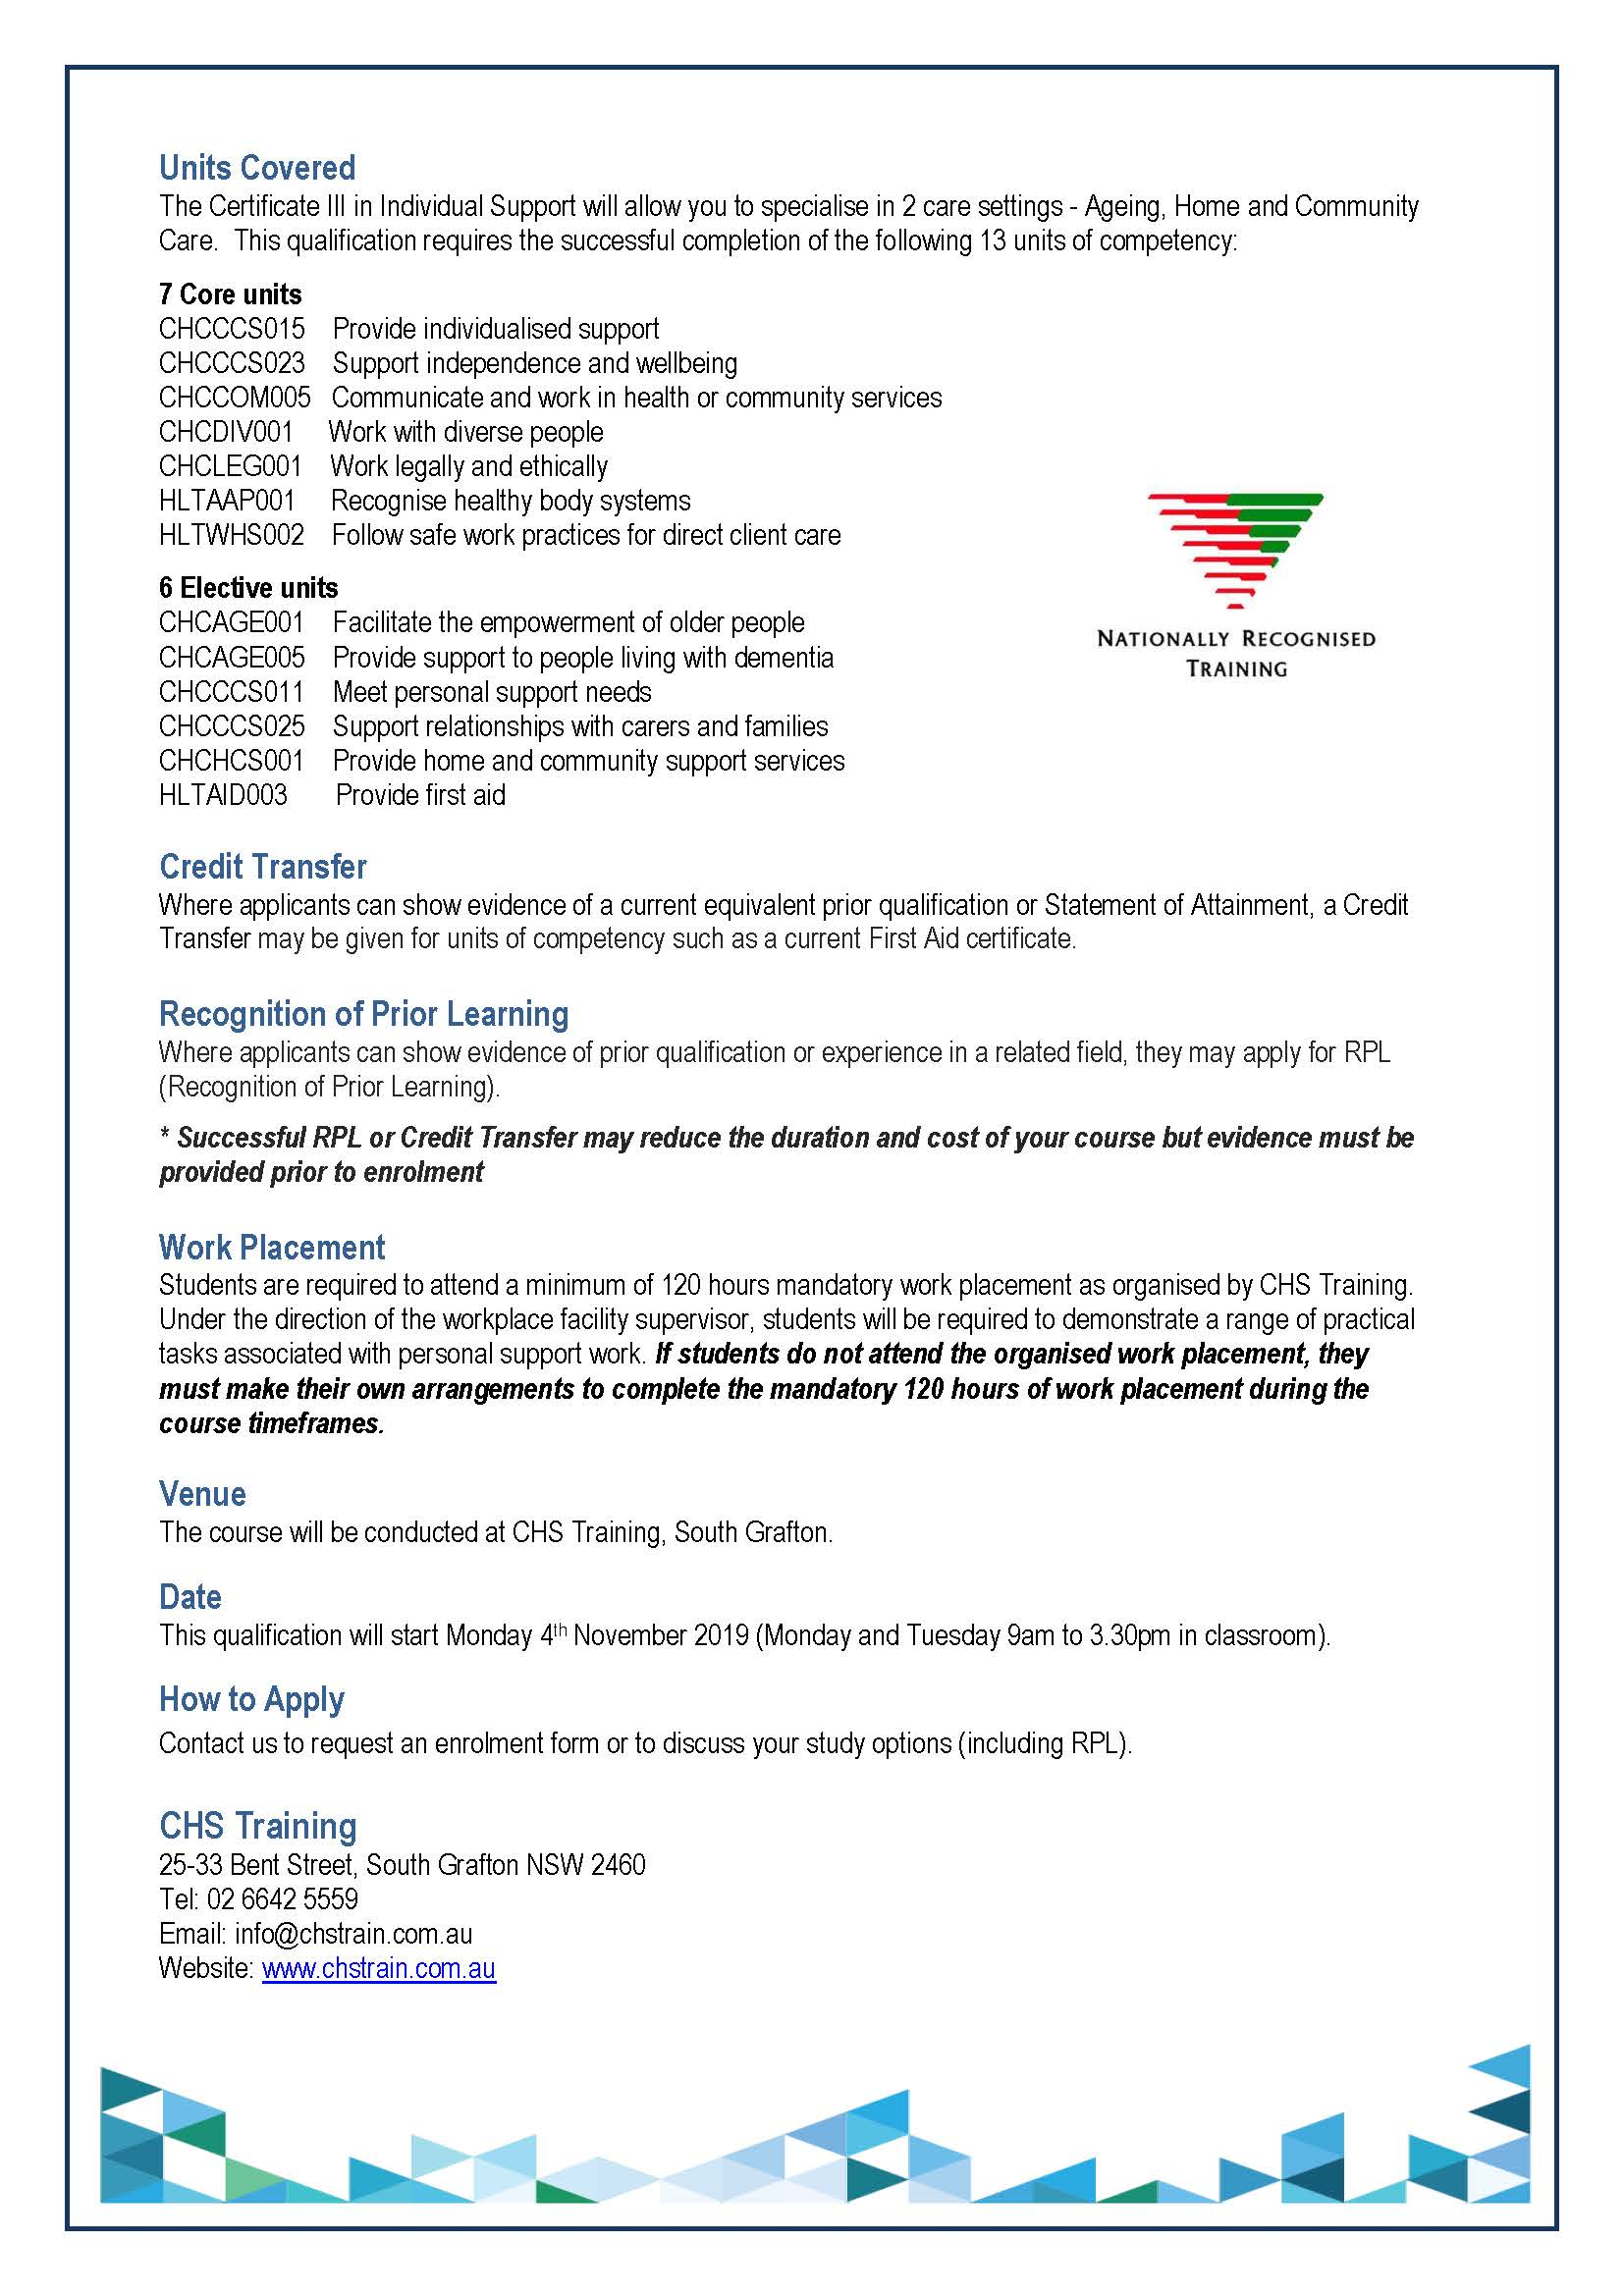 2019 Grafton Student Flyer for Cert III in IS 04.11.19 Page 2